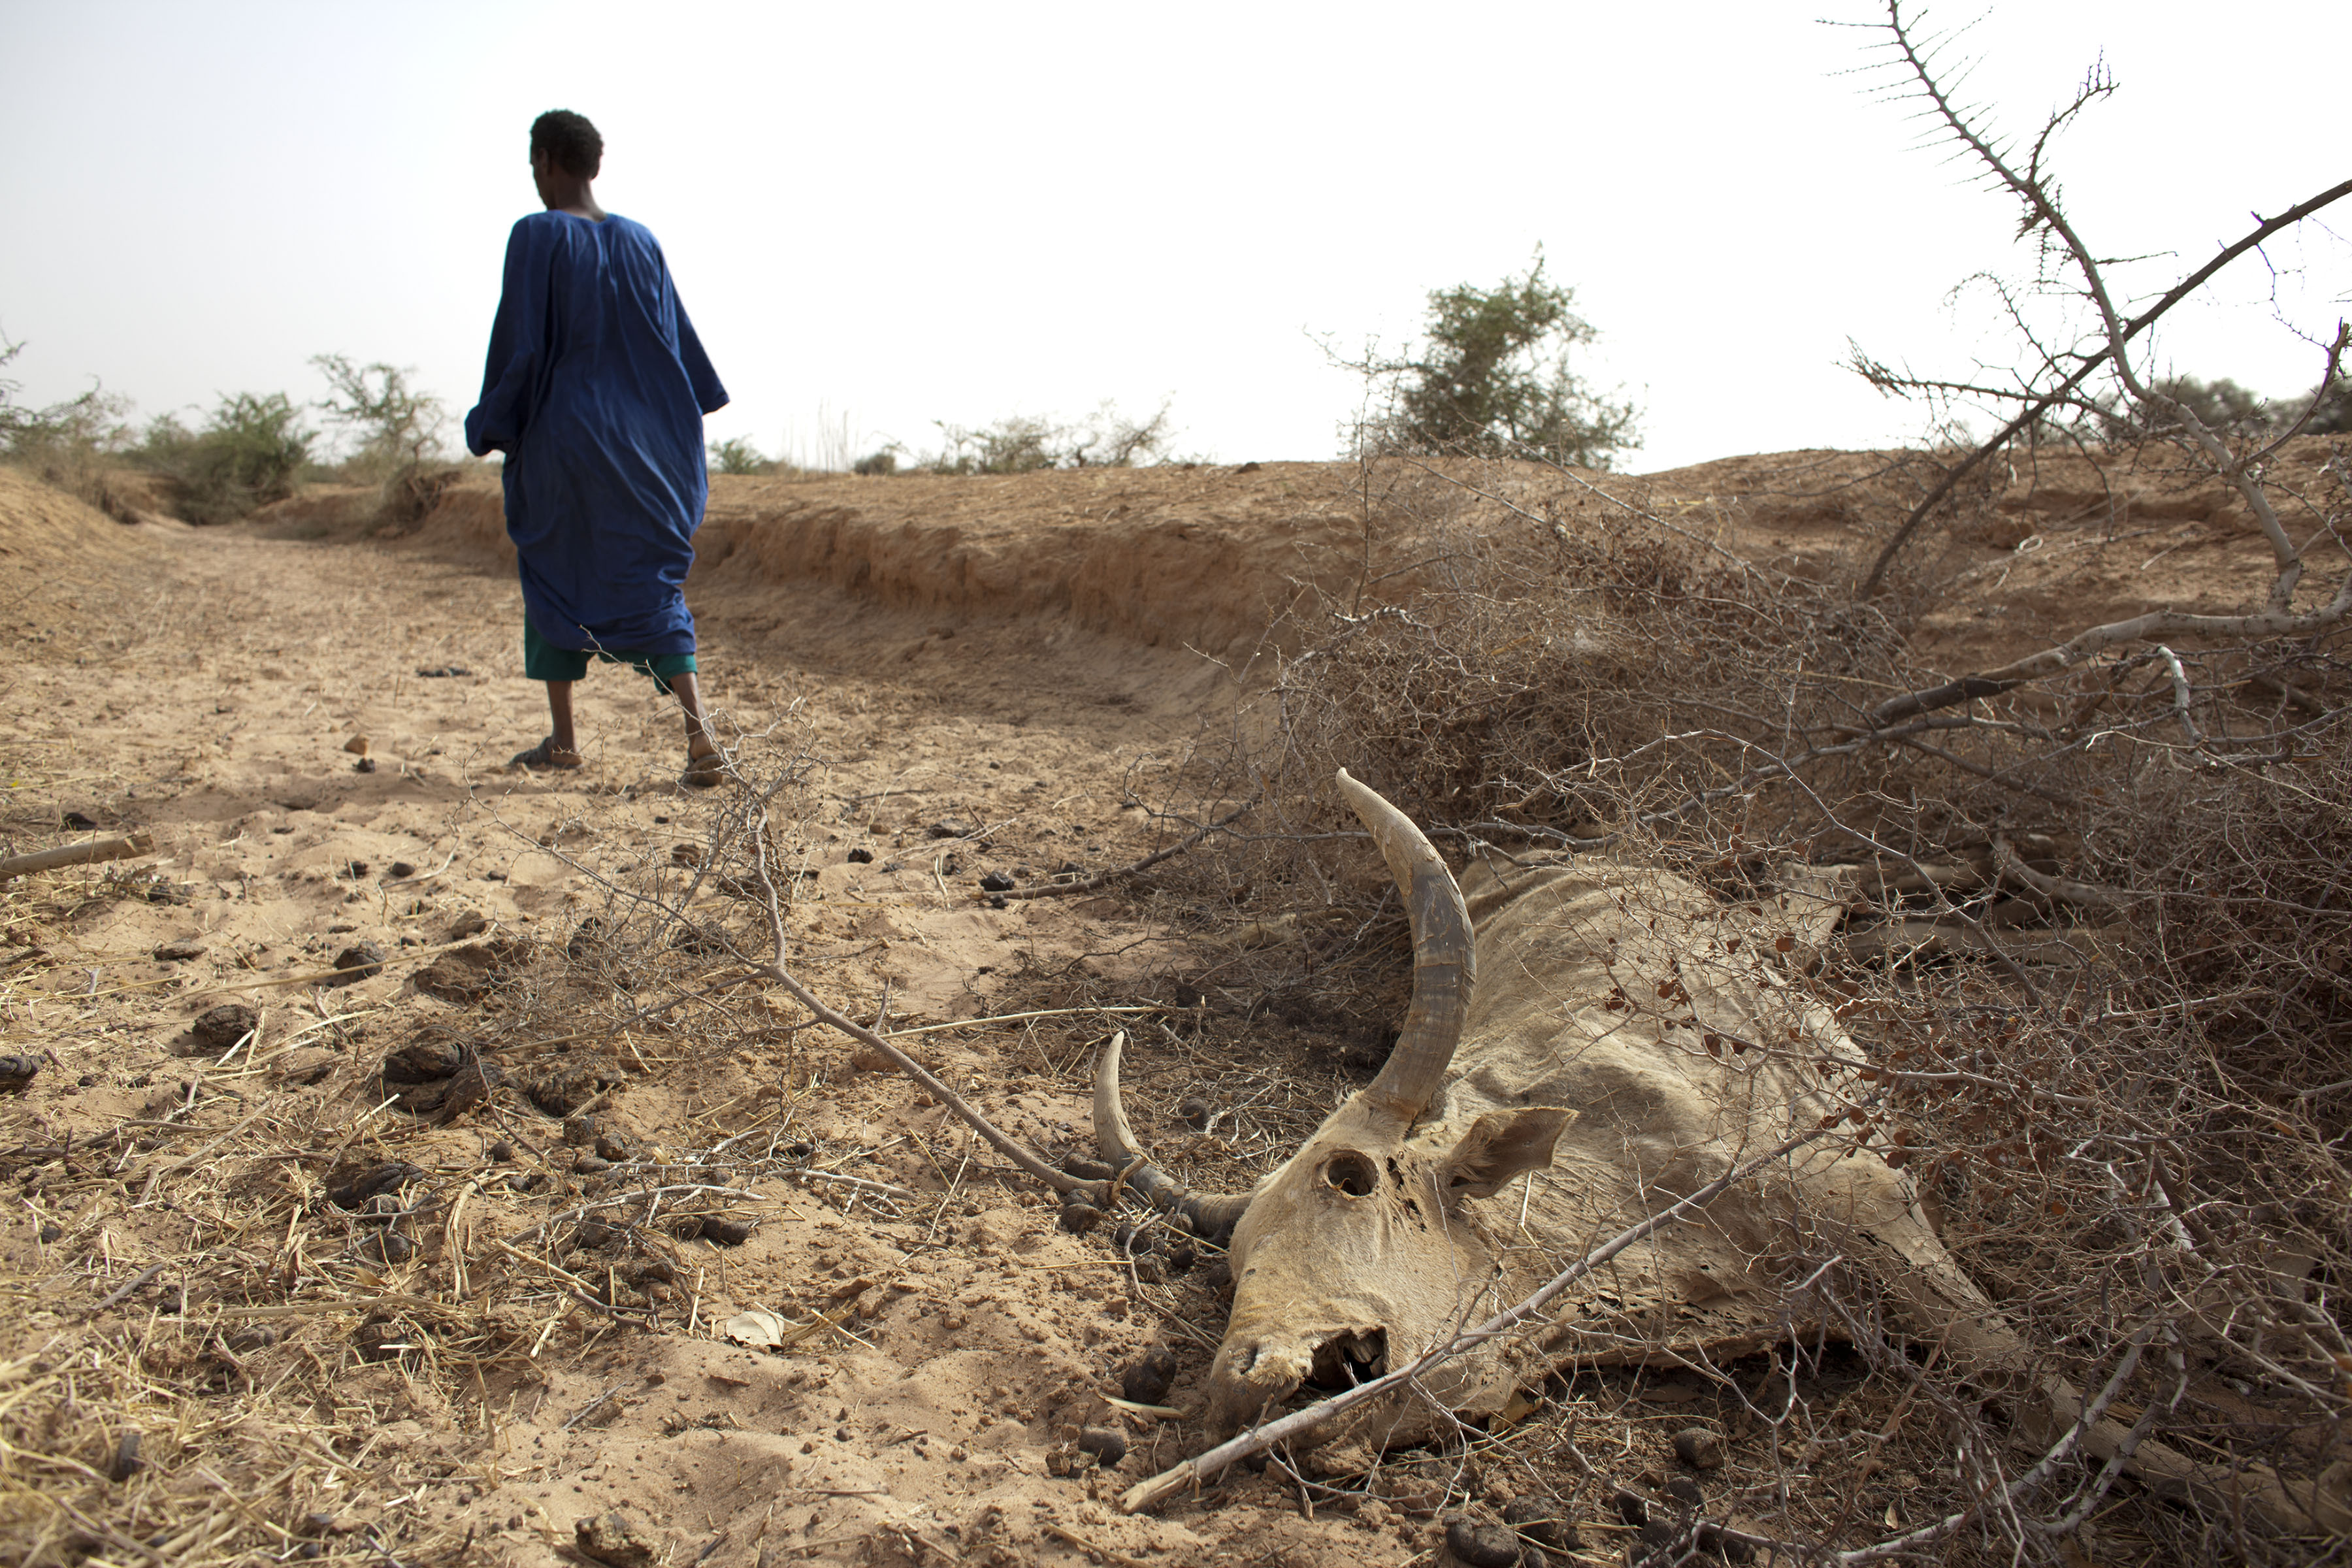 FILE - A herder walks away after showing where he says one of his cows died of starvation, outside Dikka village, in the Matam region of northeastern Senegal, May 1, 2012.